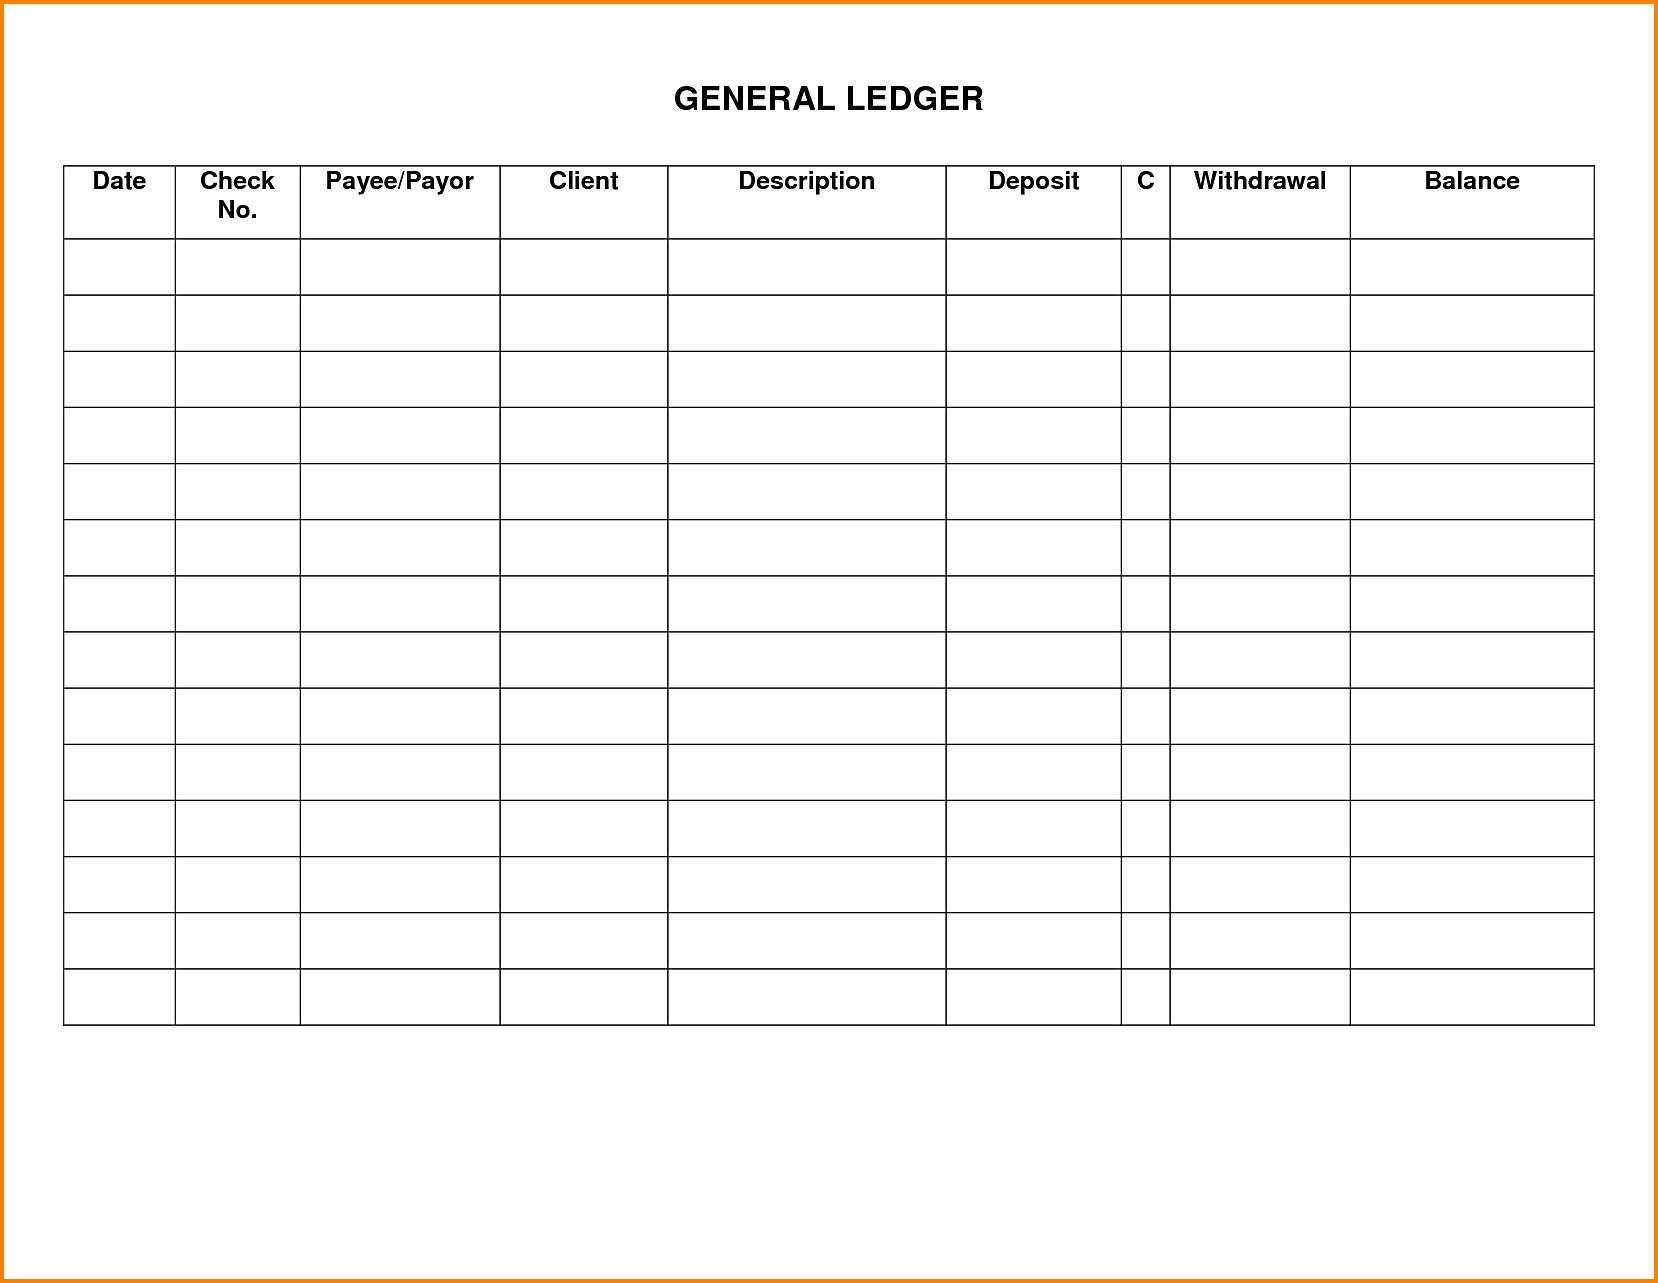 7 Docs Business Ledger Template | Ledger Entries Within Small In Small Business General Ledger Template